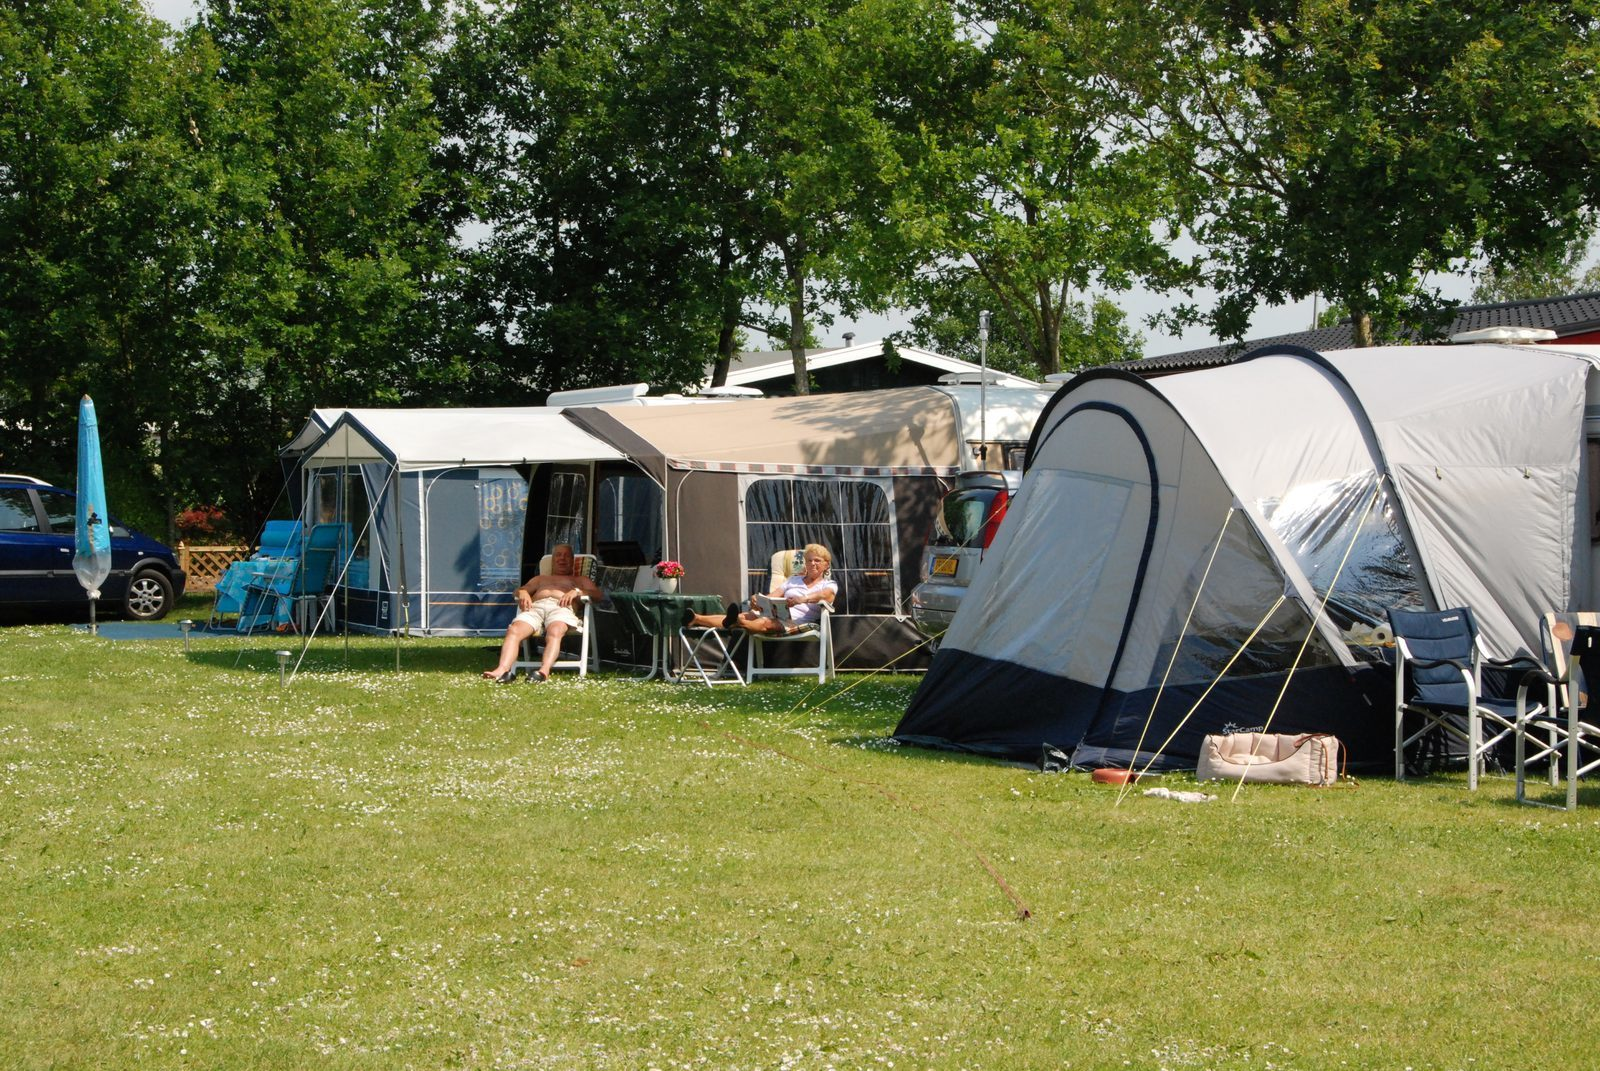 Campsites for seniors in the Netherlands